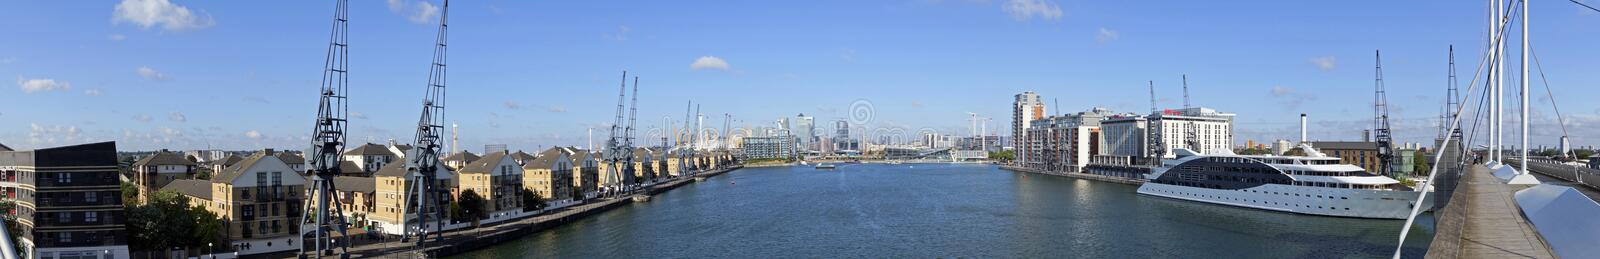 Excel Marina 180 degree panoramic royalty free stock photos